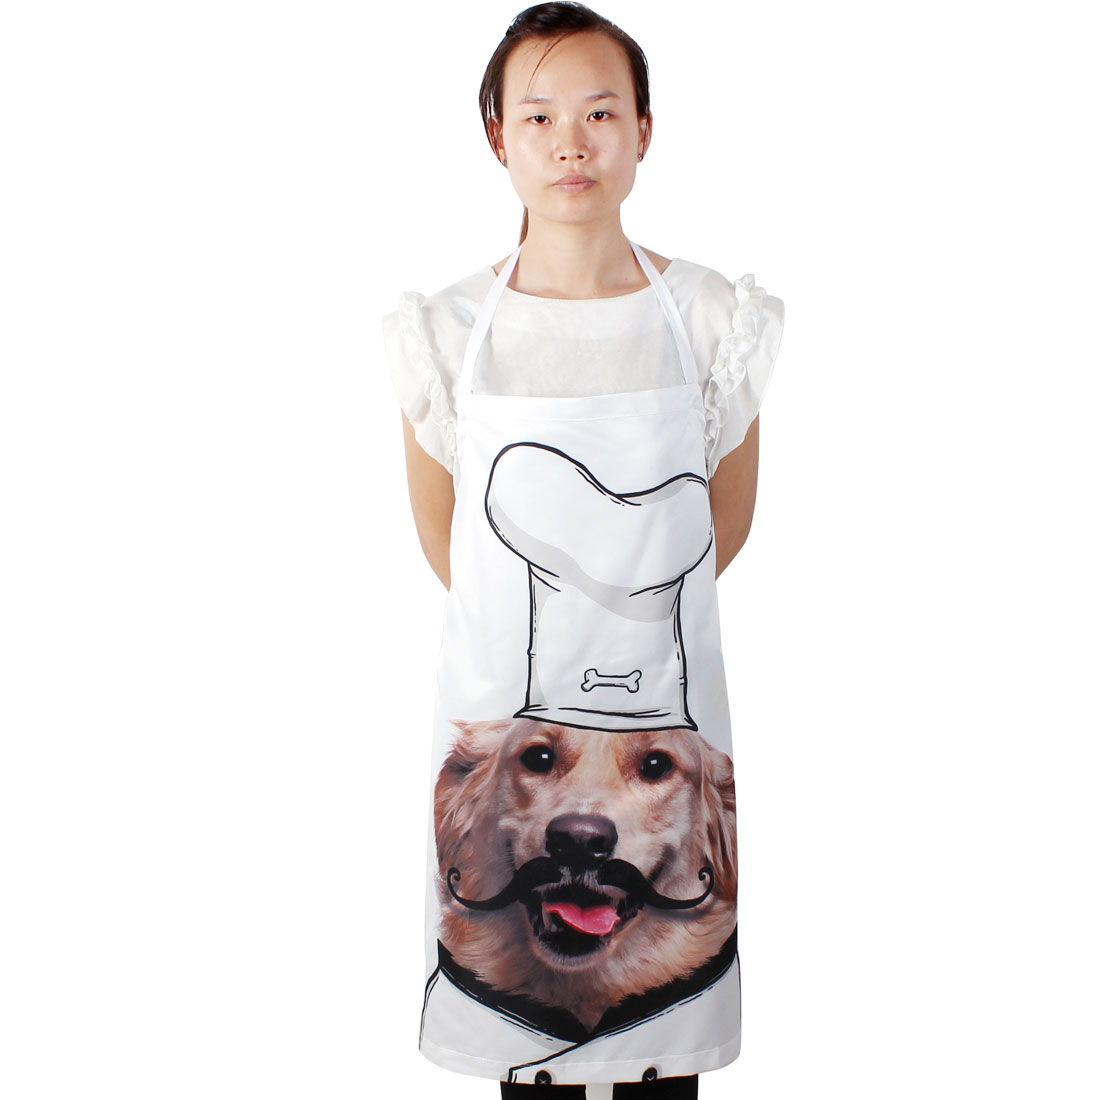 Restaurant Household Kitchen Dog Printed Cooking Apron Bib Dress White